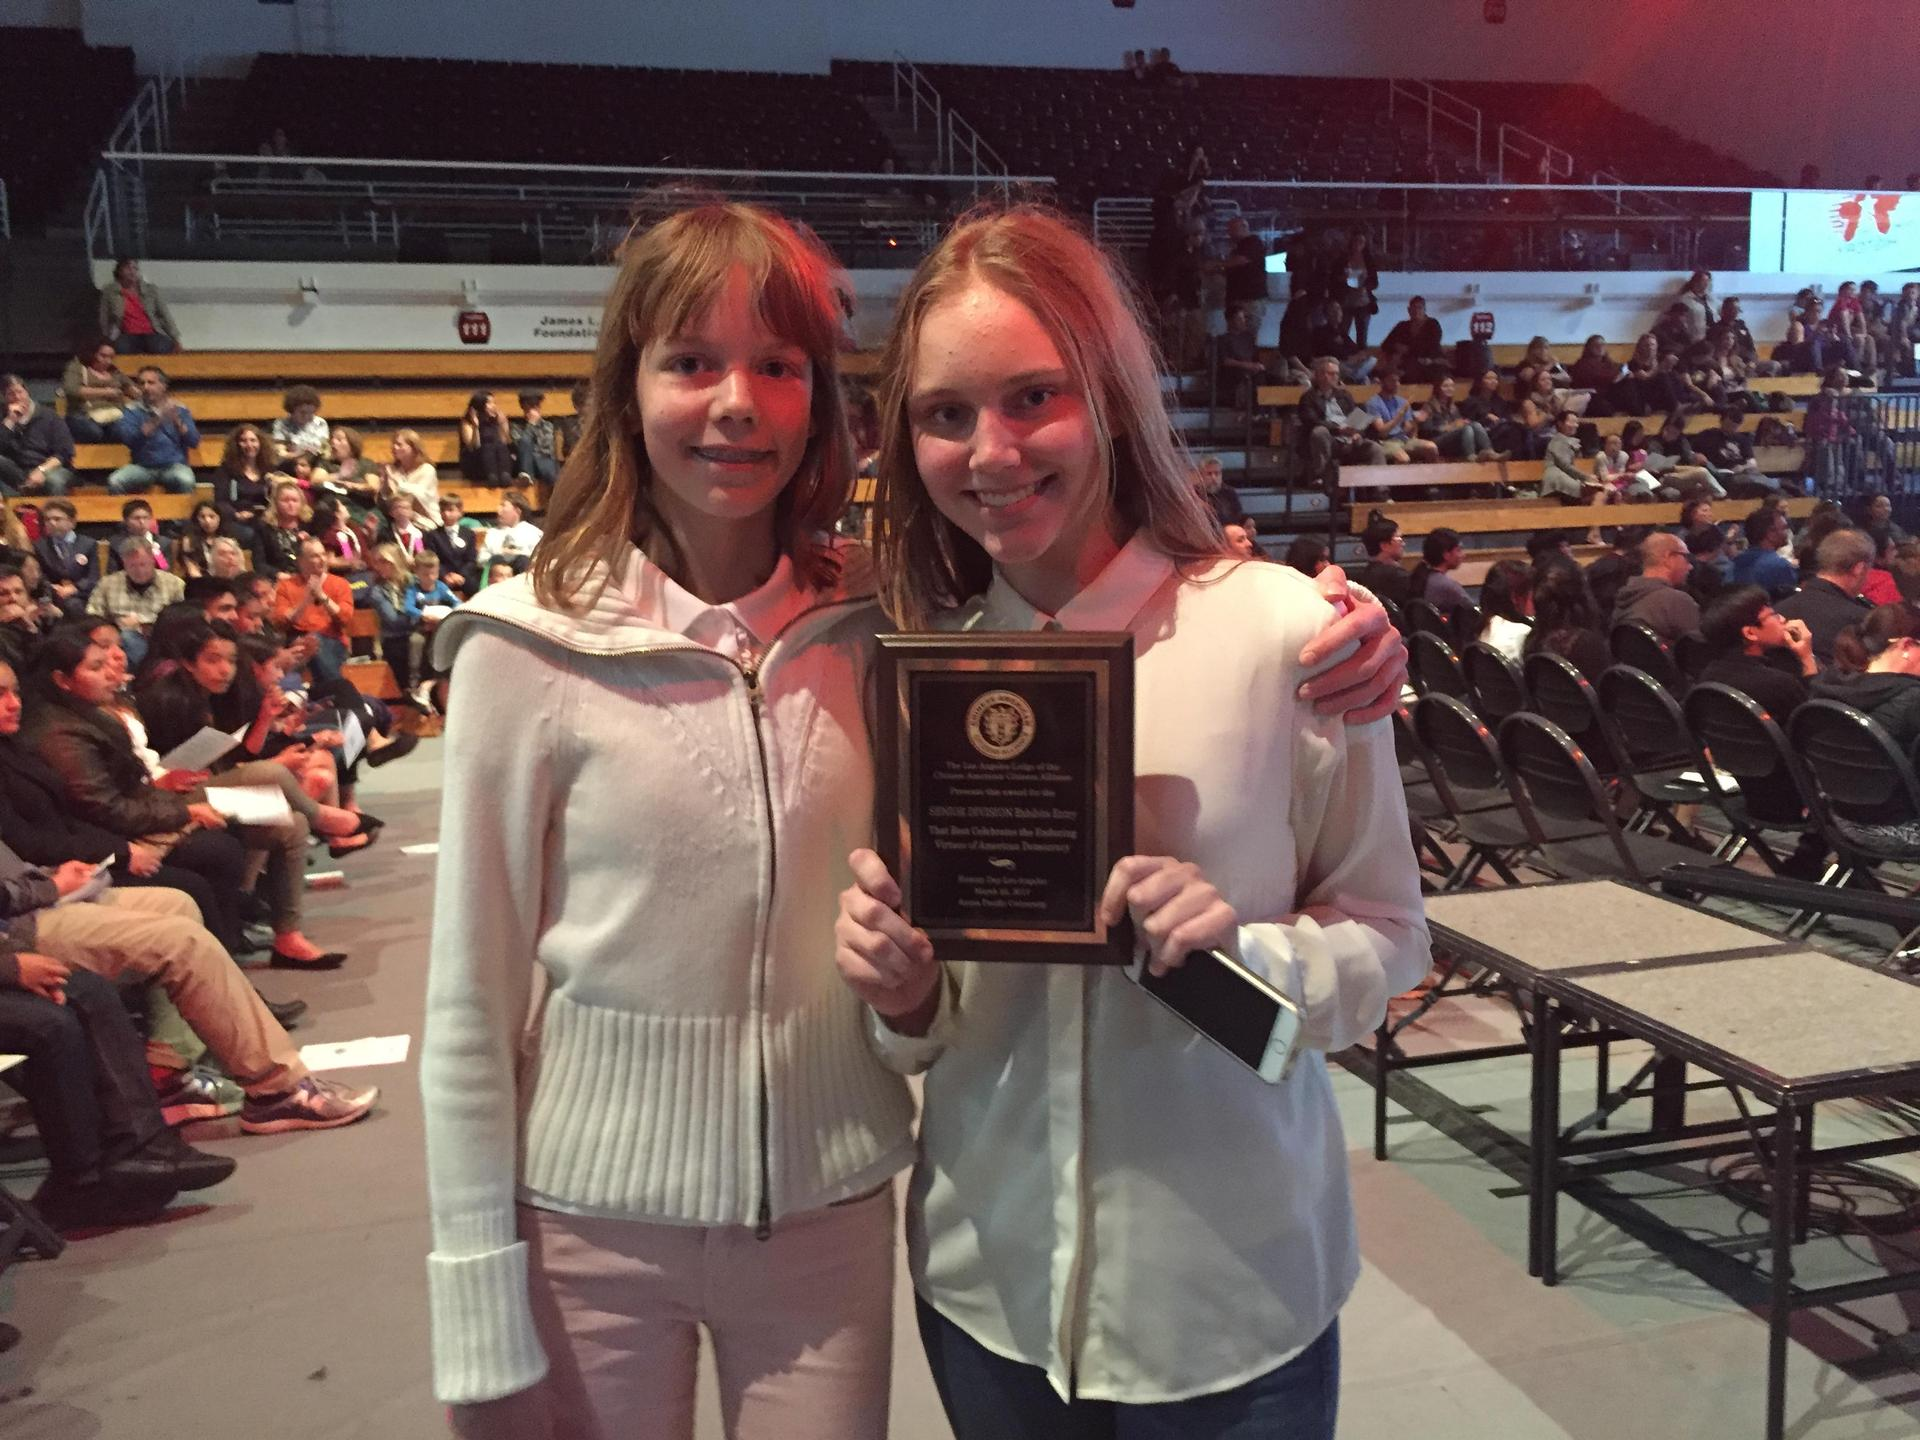 Two students holding up plaque award